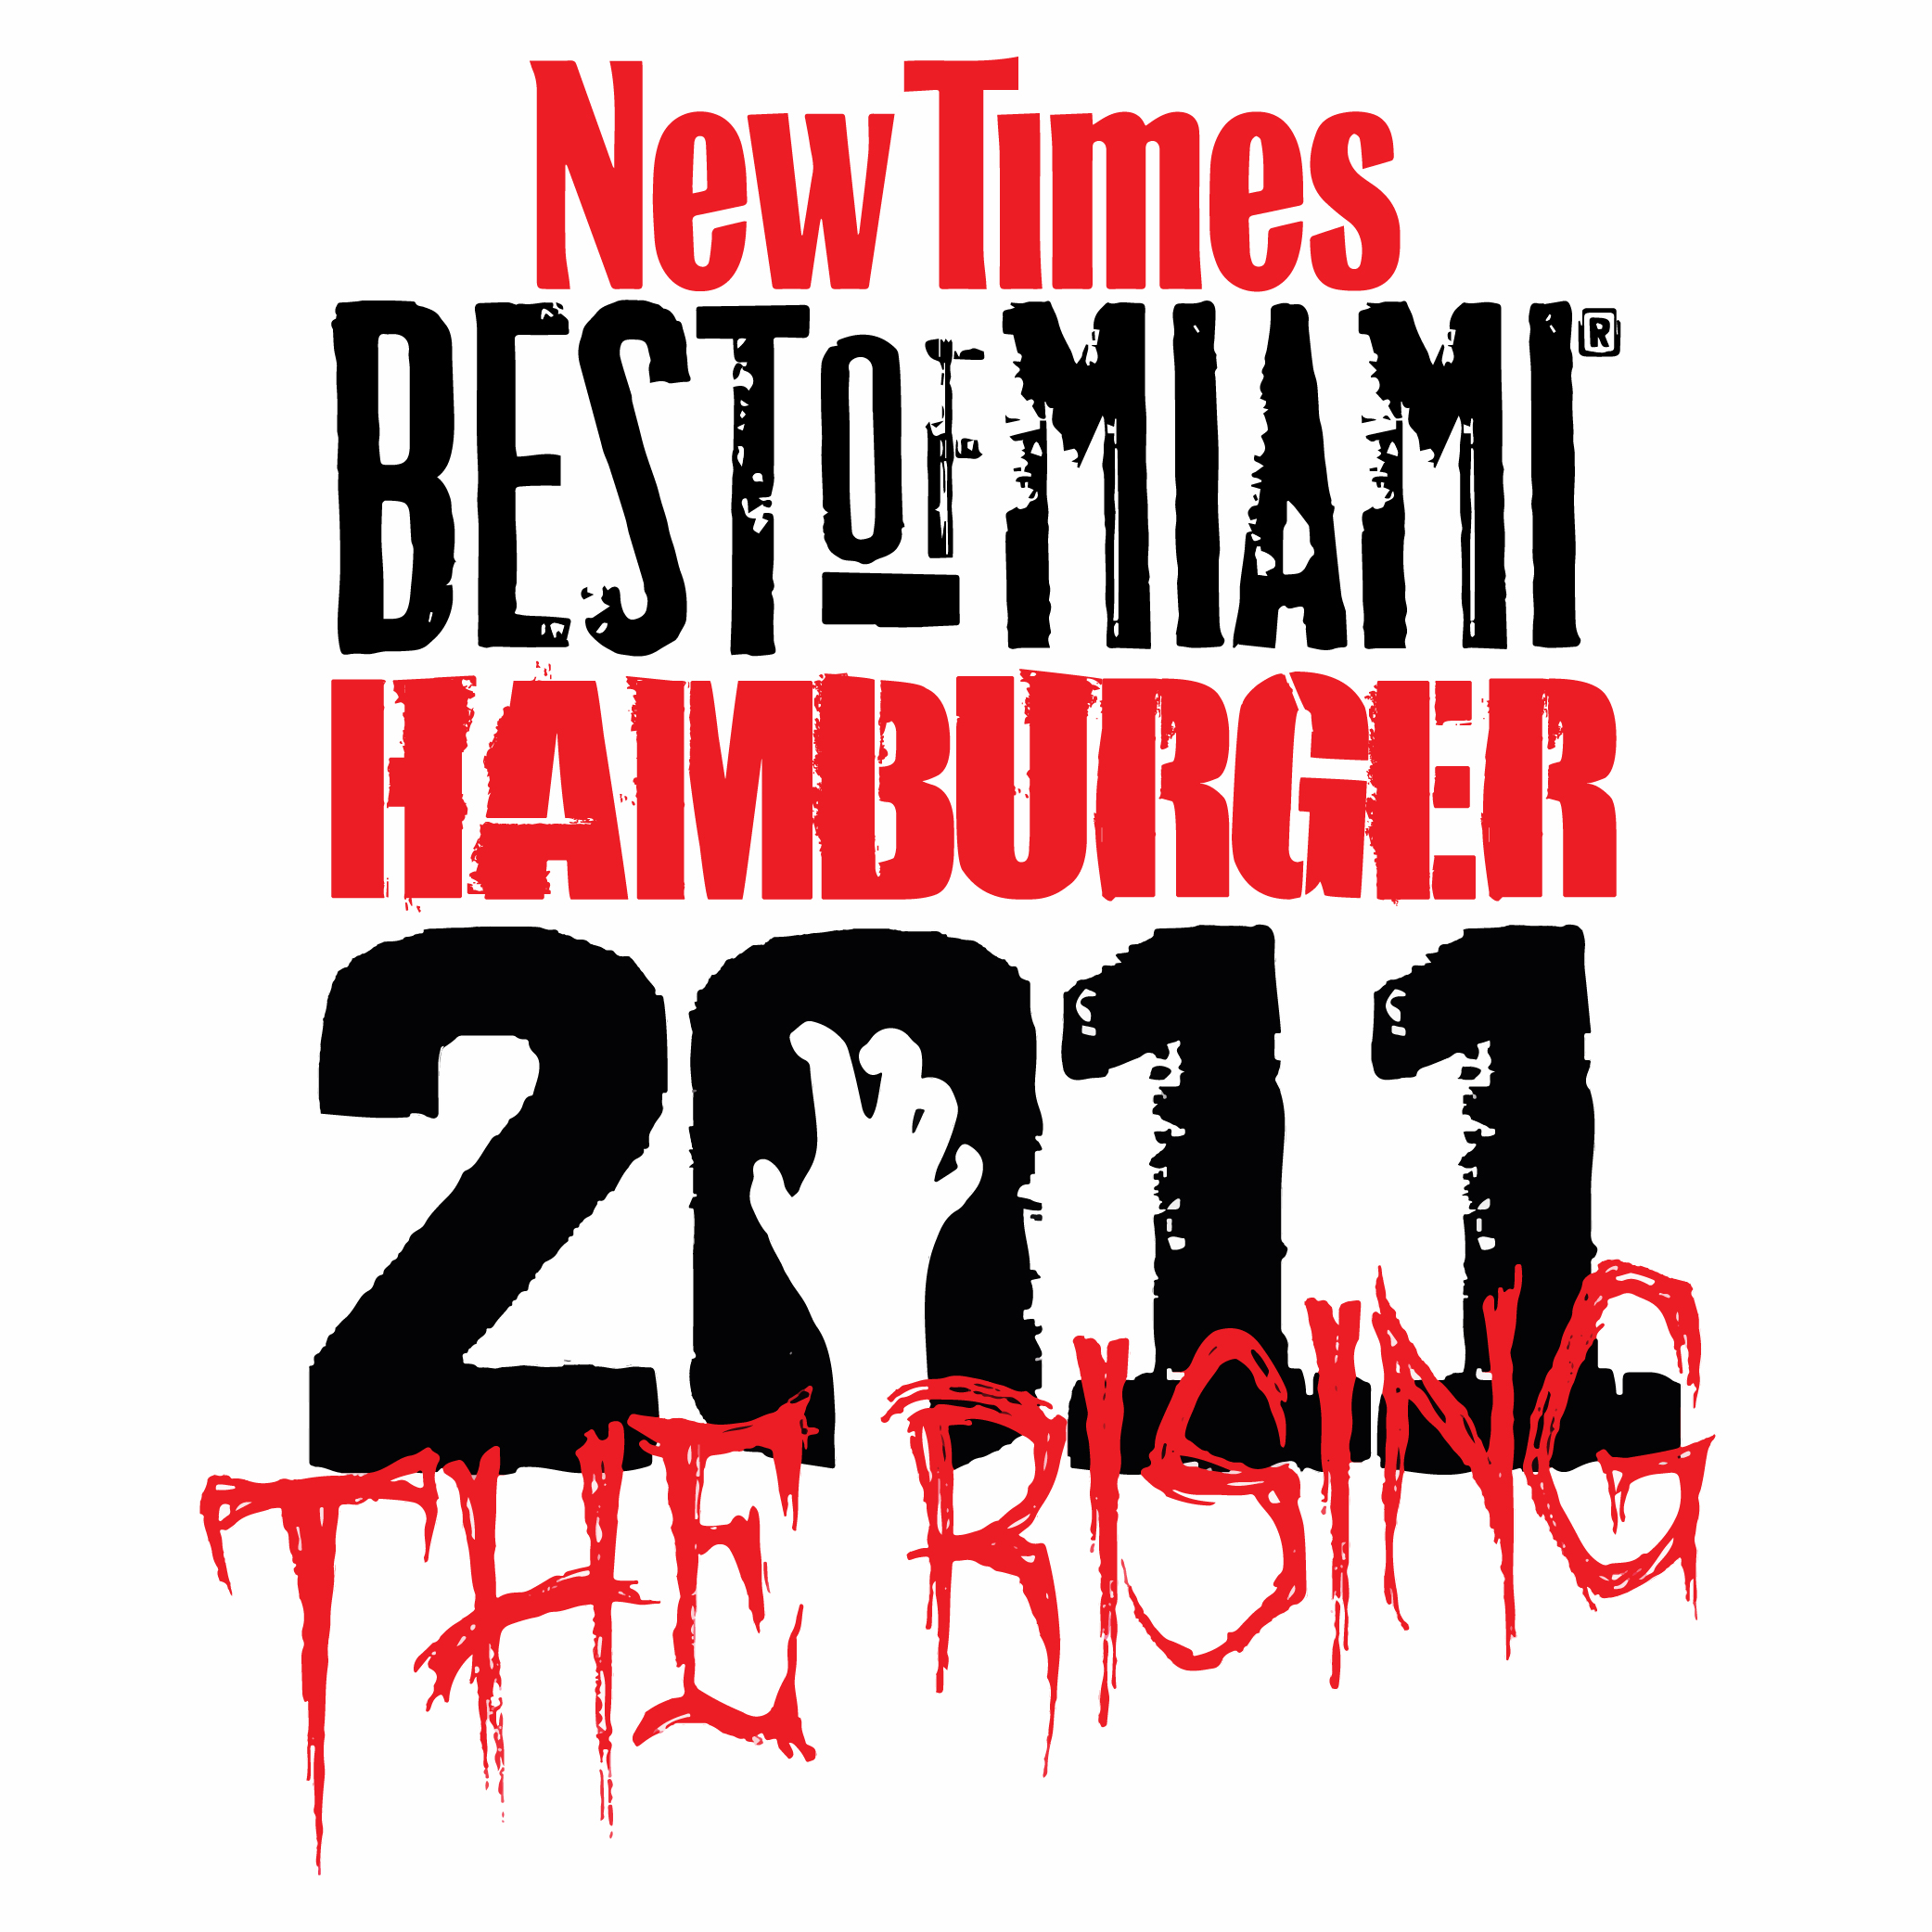 new times best of miami hamburger the rising 2011